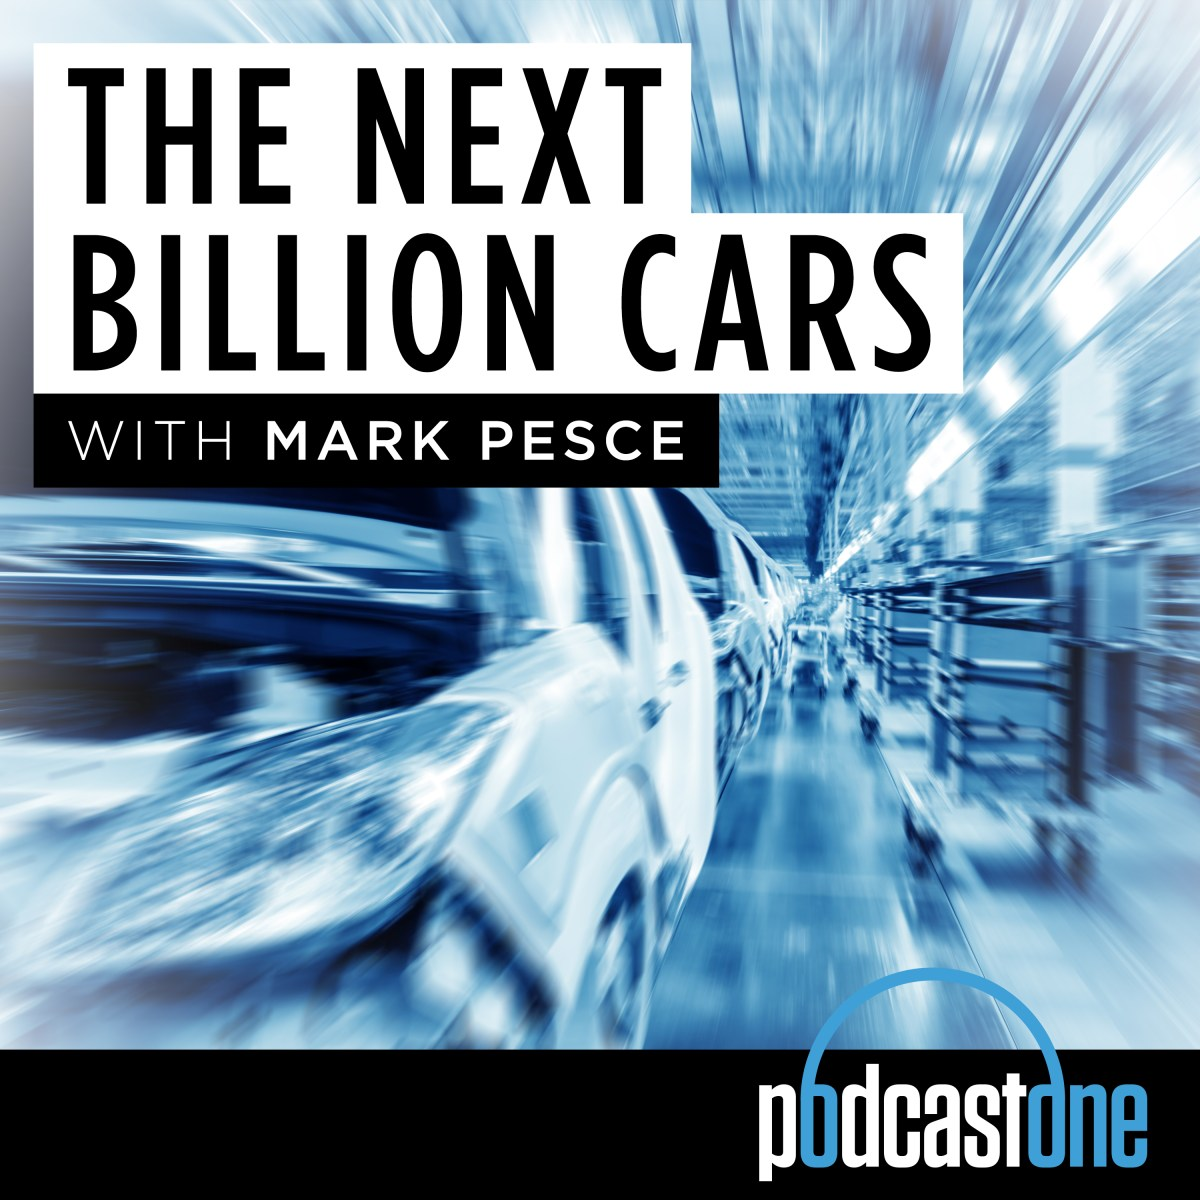 THE NEXT BILLION CARS Episode 7 – The Next Billion Tons